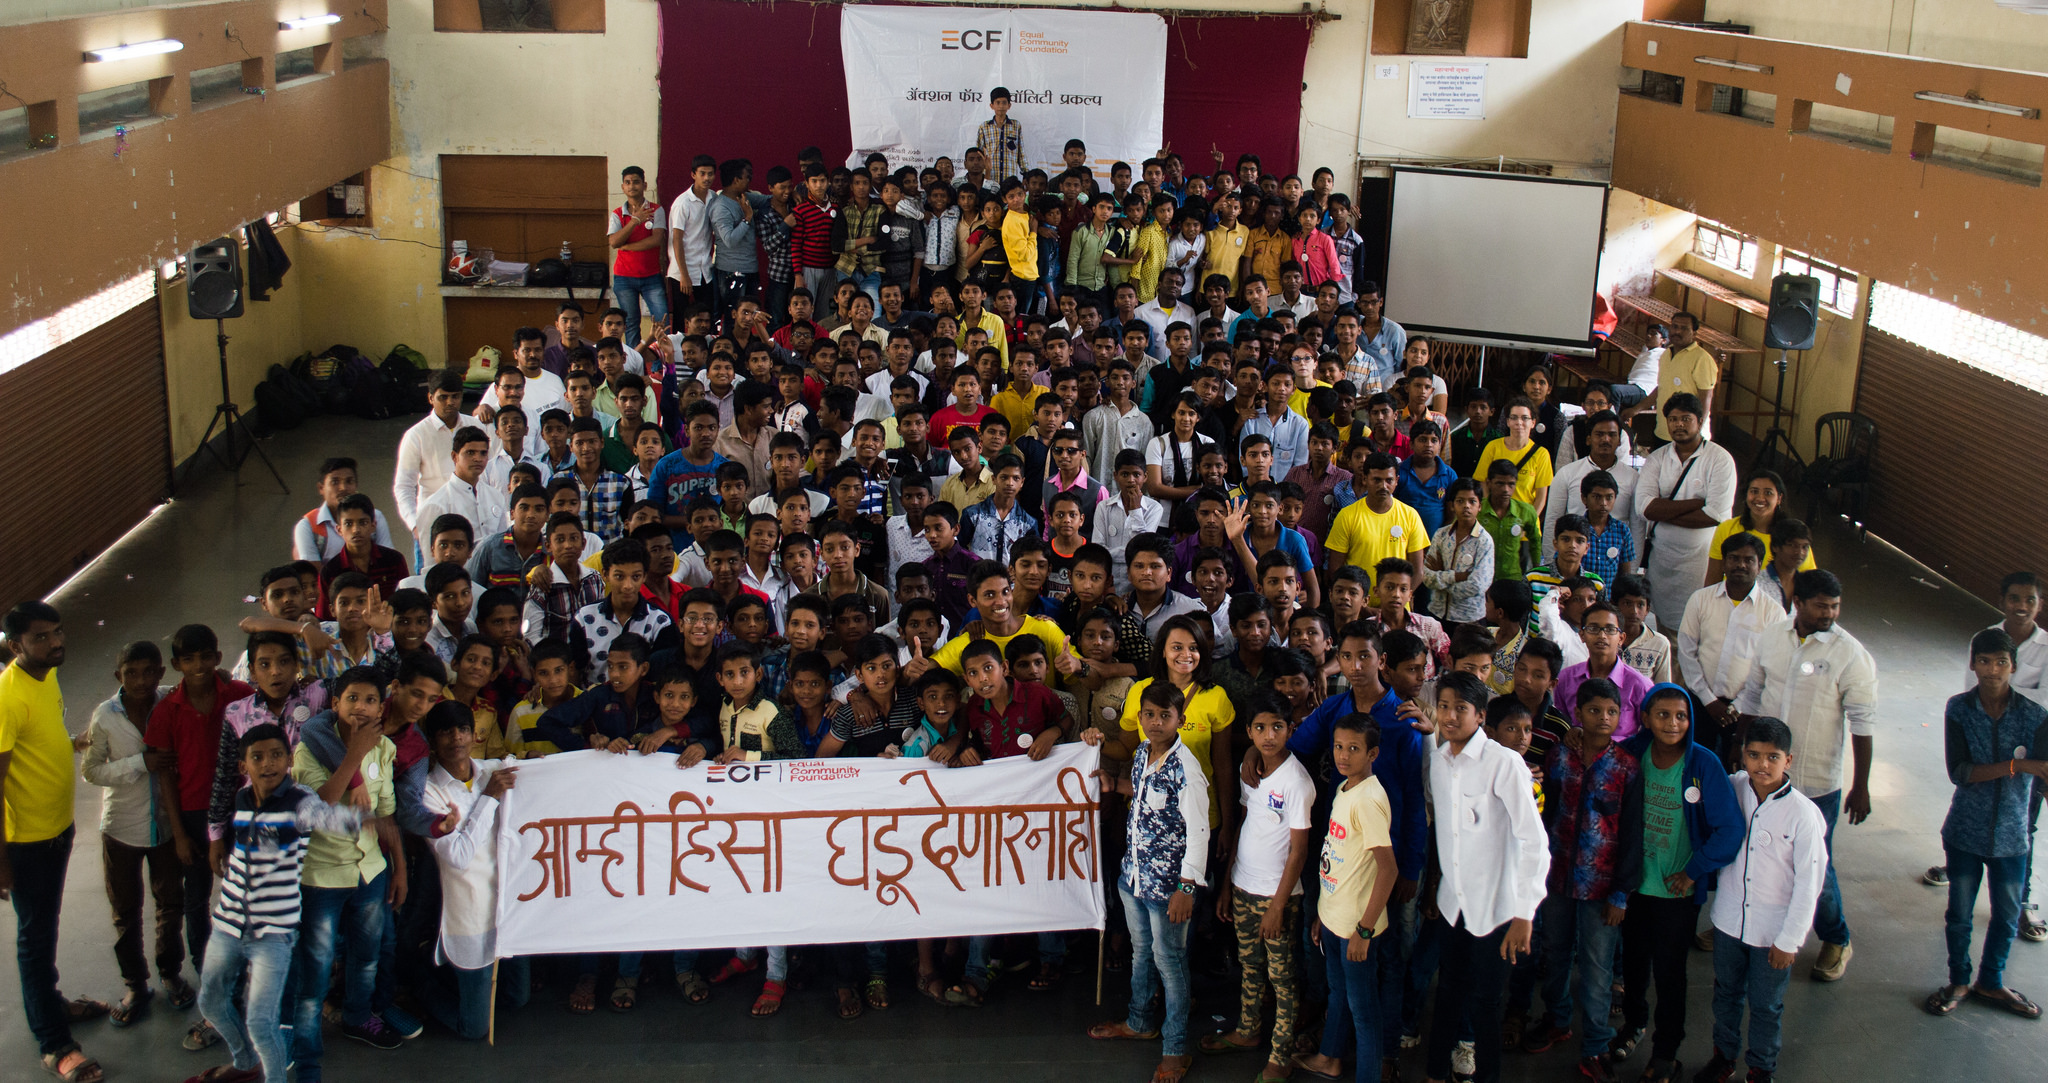 ECF young boys and men standing in a group with a banner - prevention of violence against women